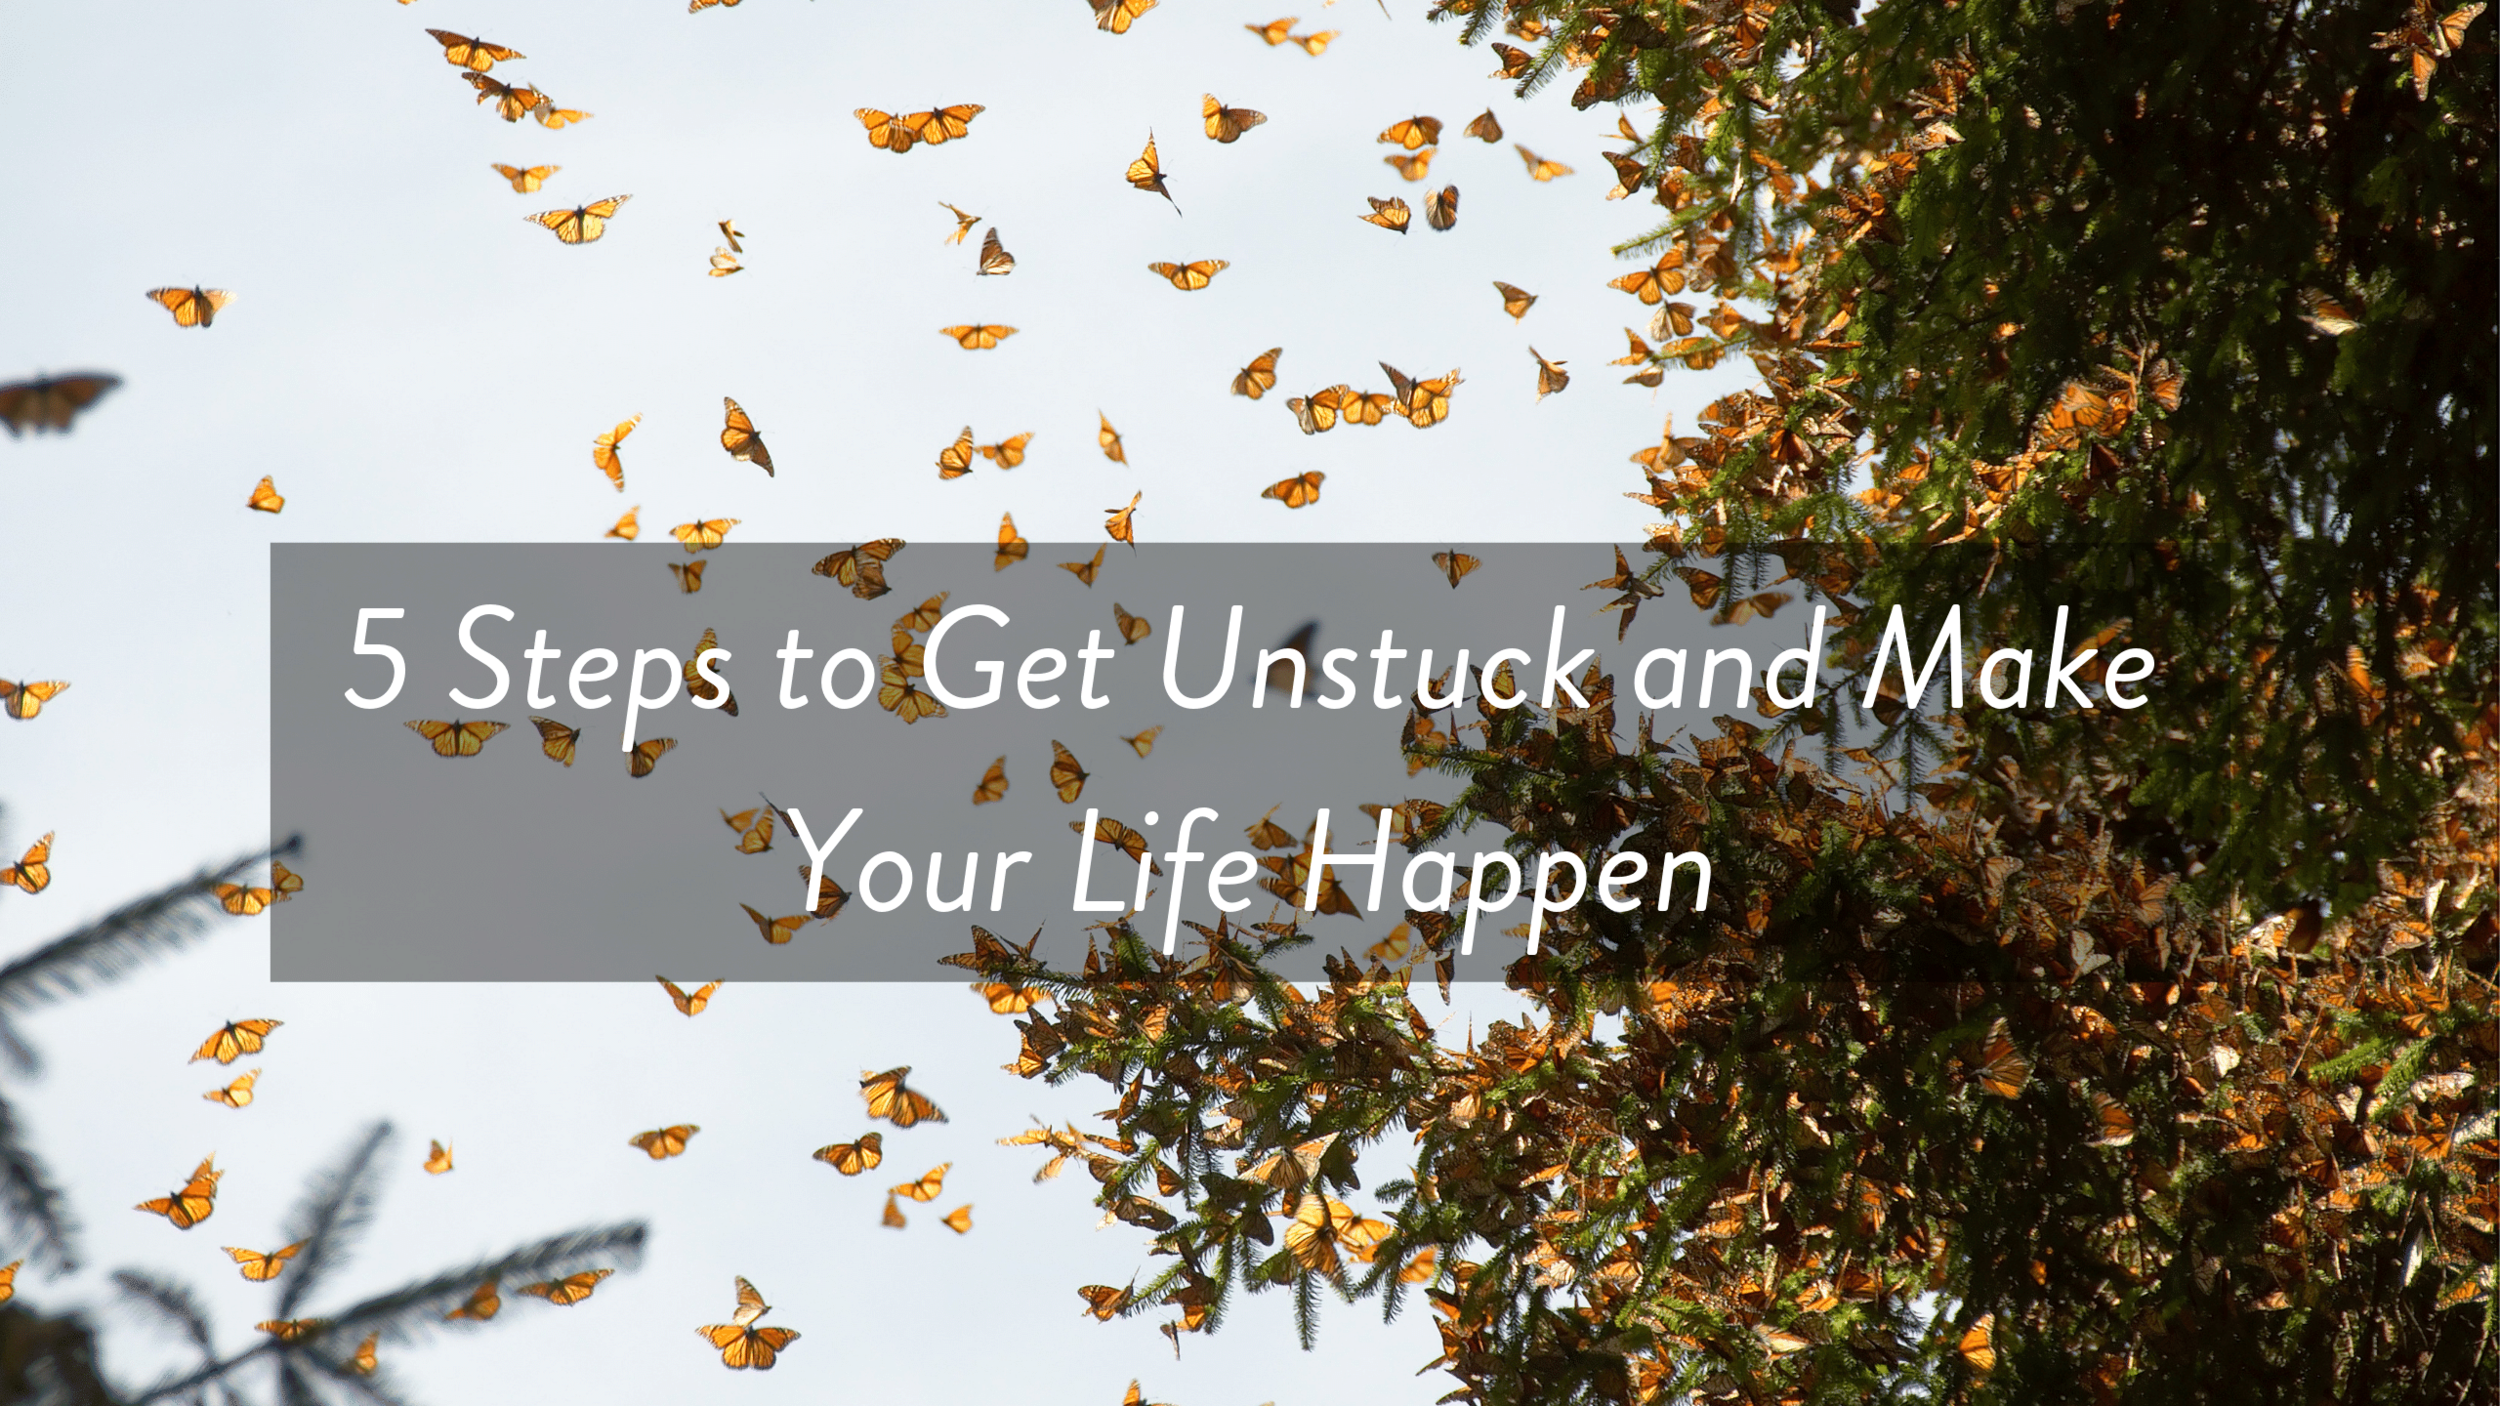 5 Steps to Get Unstuck and Make Your Life Happen.png